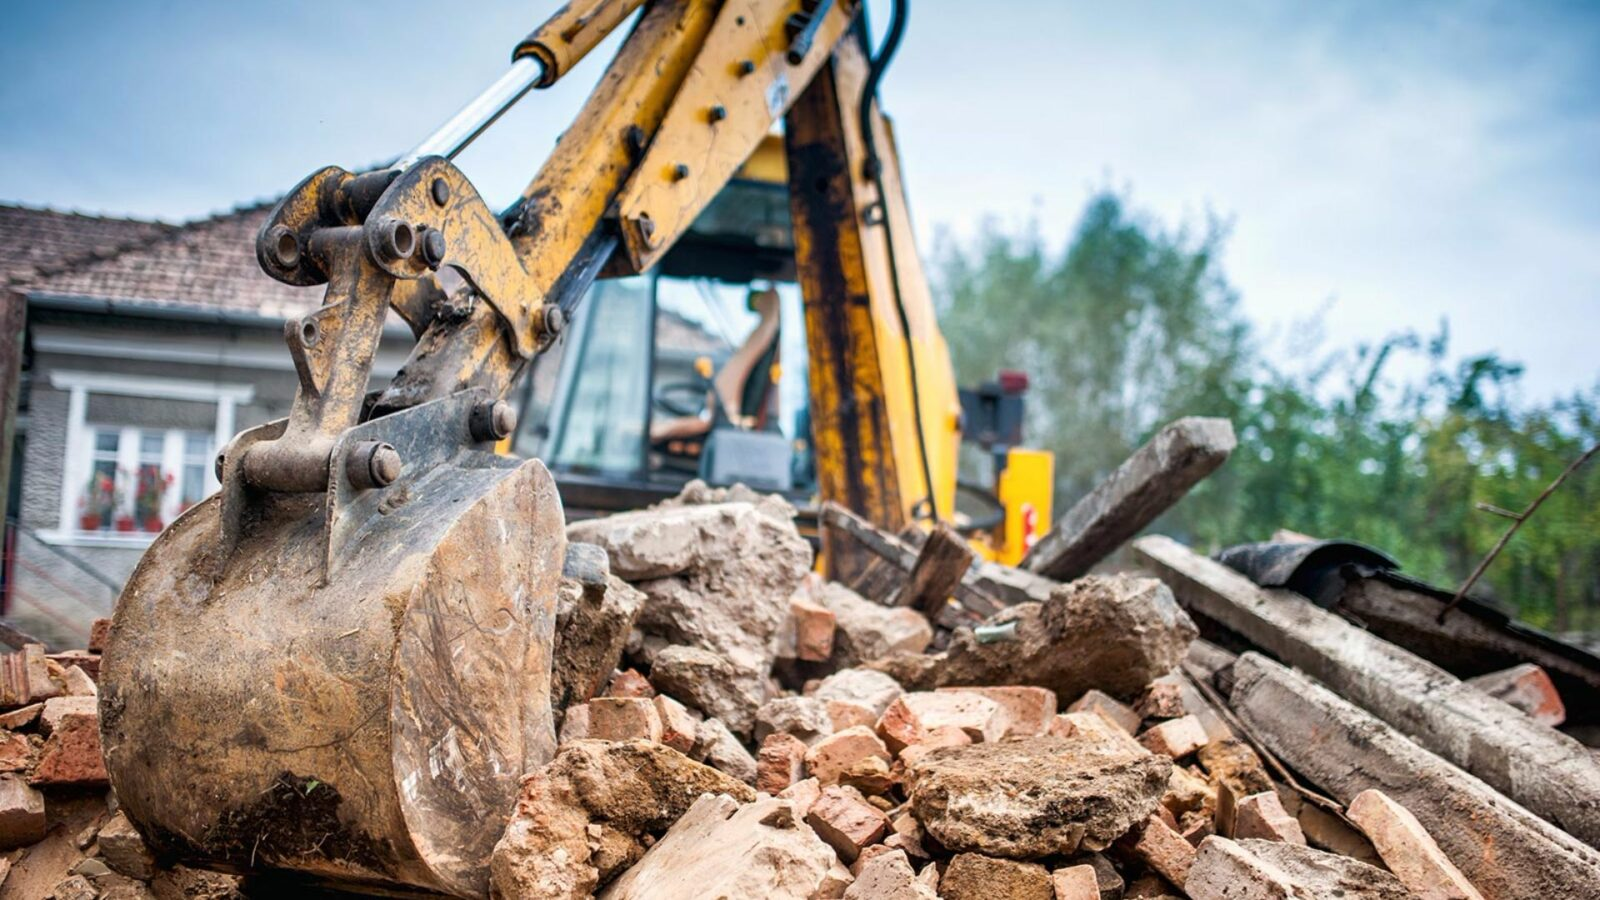 Demolition Contractors Newcastle - Safety Tips When Handling Hand and Power Tools